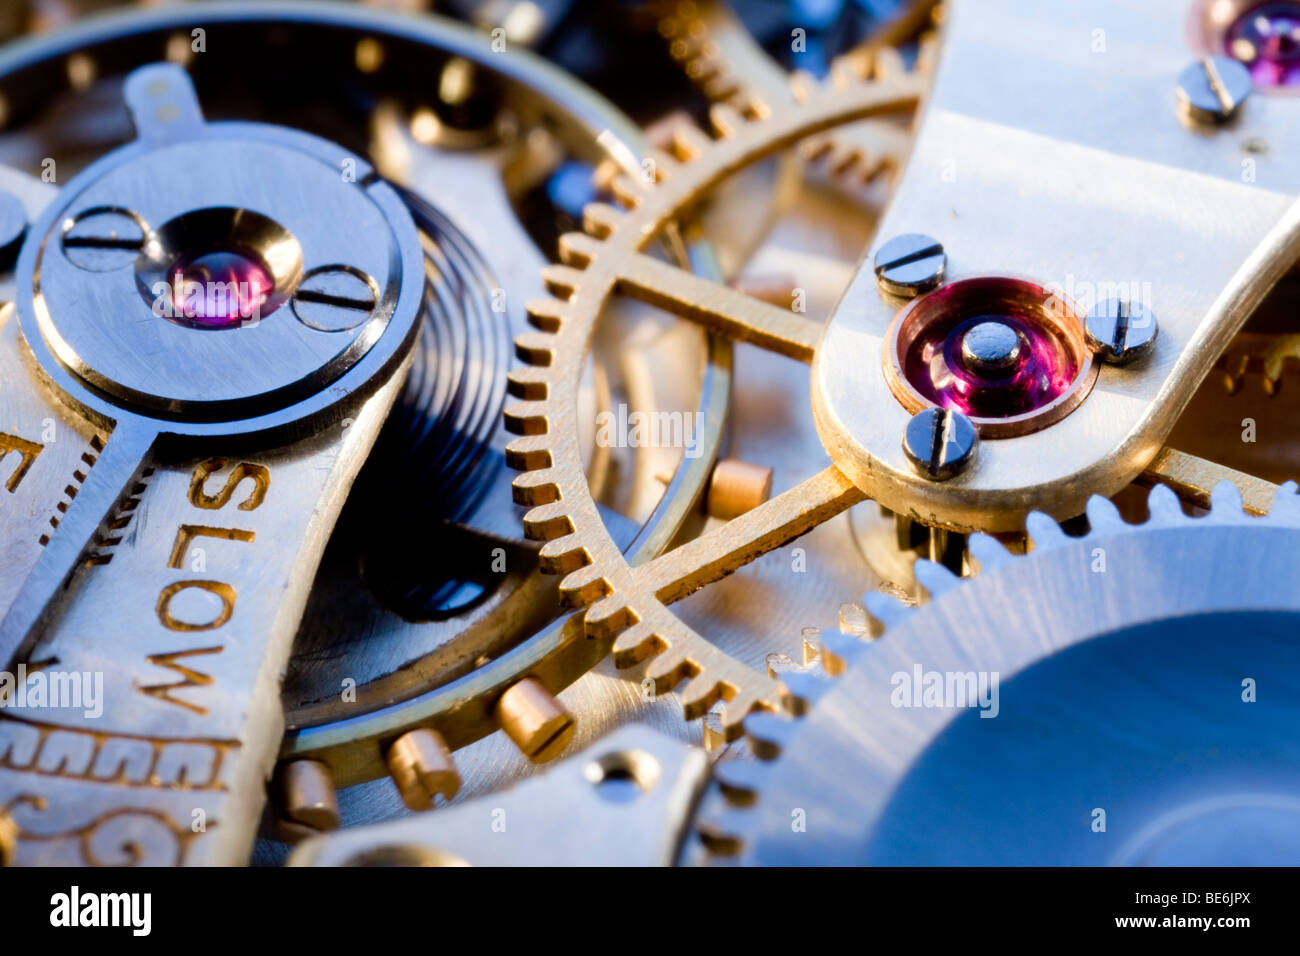 macro shot of an antique clockwork, balance wheel, stones, gearwheel, tension spring - Stock Image